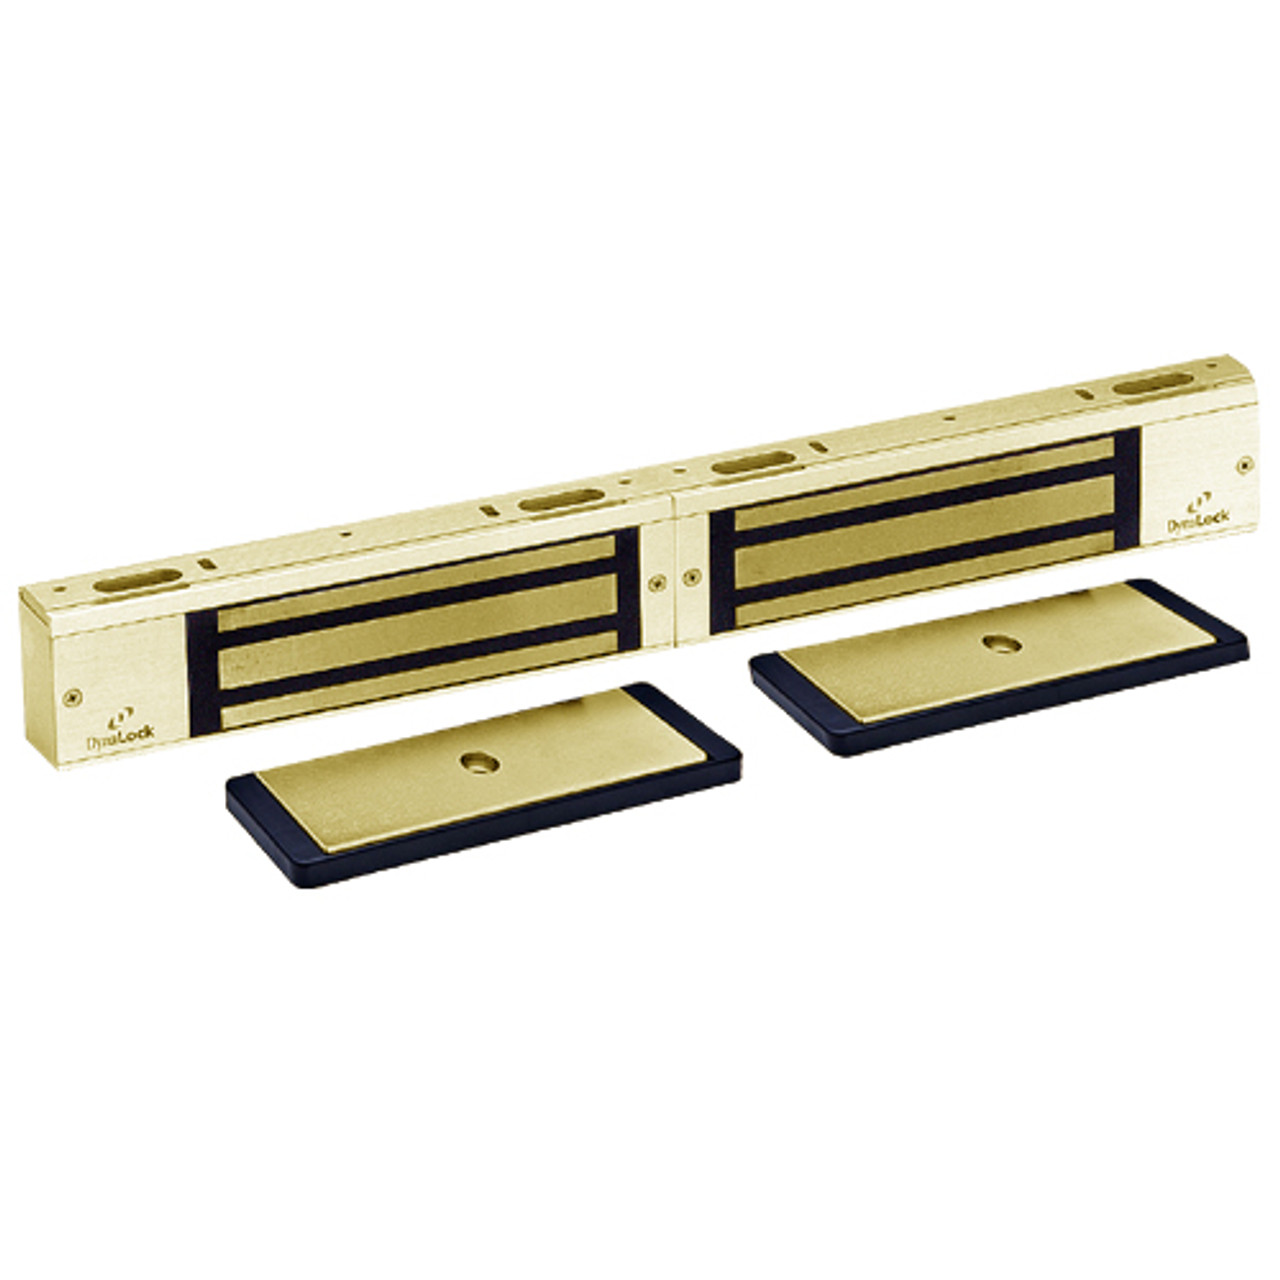 3002-US3 DynaLock 3000 Series 1500 LBs Double Electromagnetic Lock for Outswing Door in Bright Brass